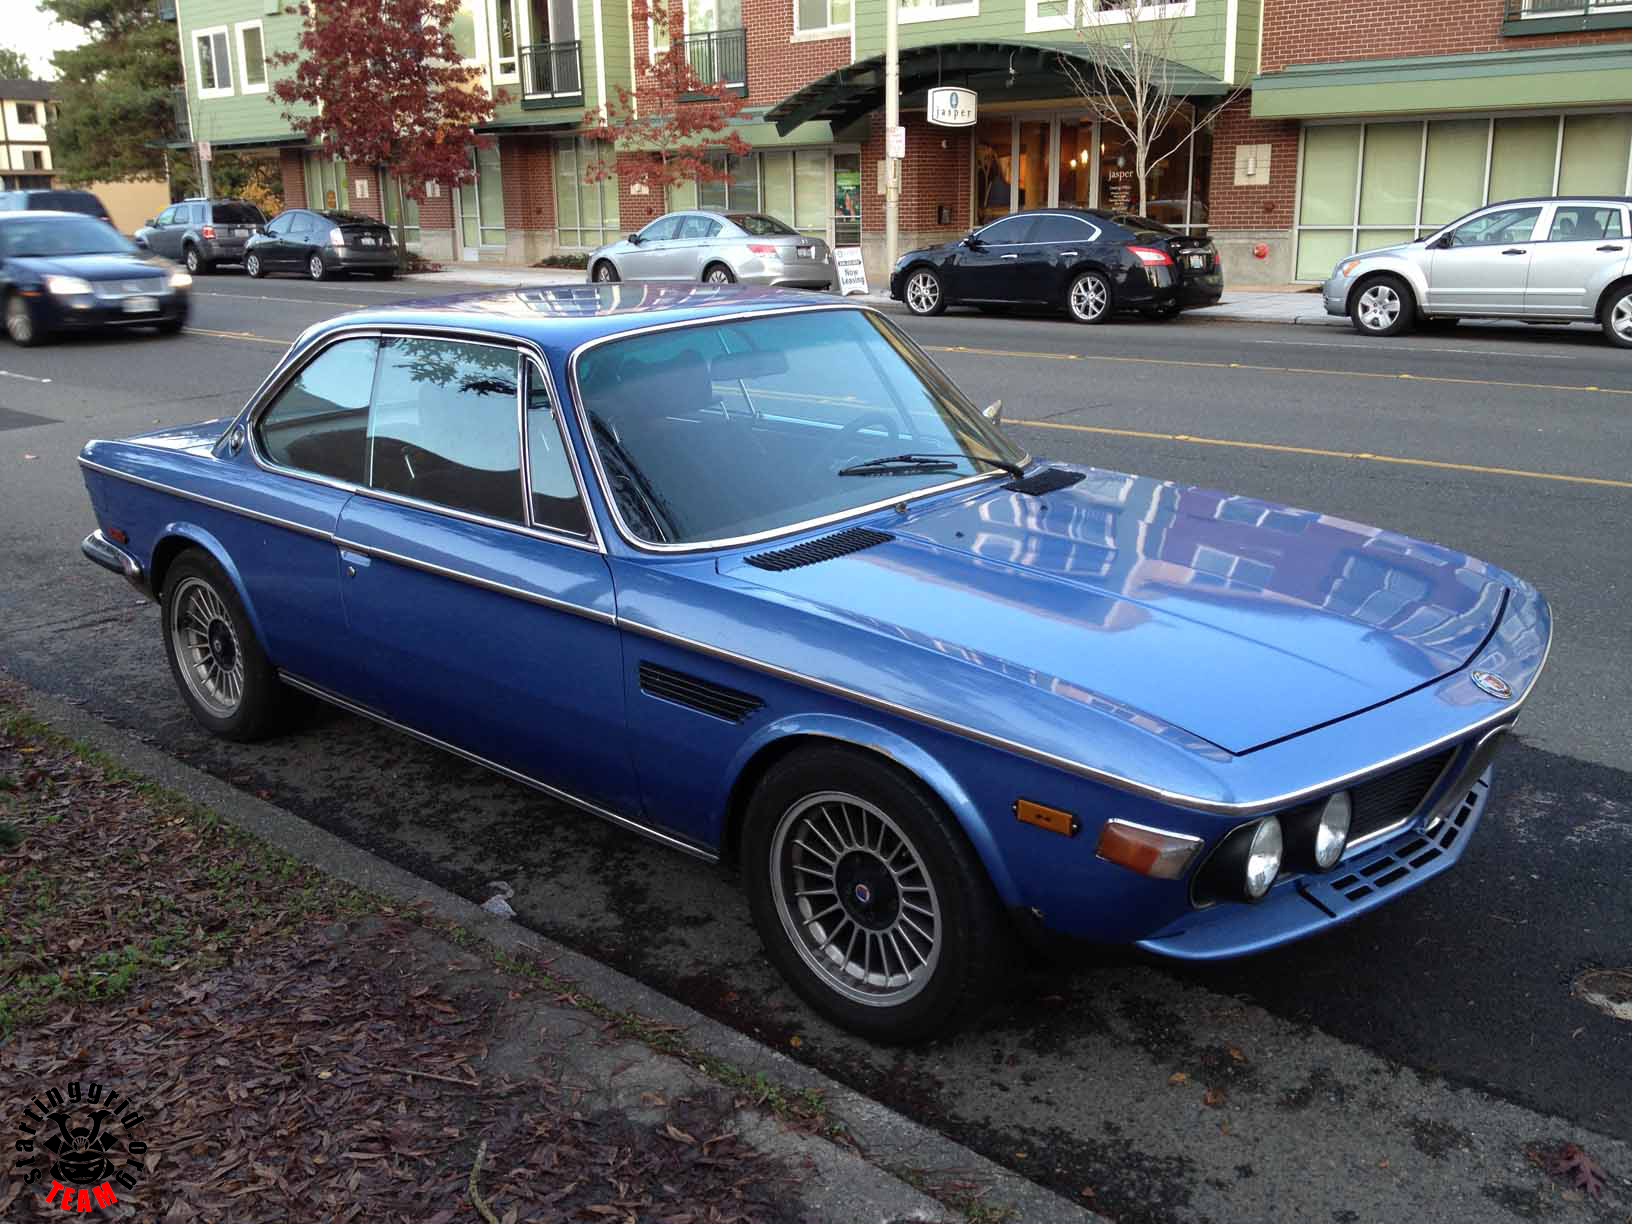 Street Parked Bmw 3 0 Csi Startinggrid